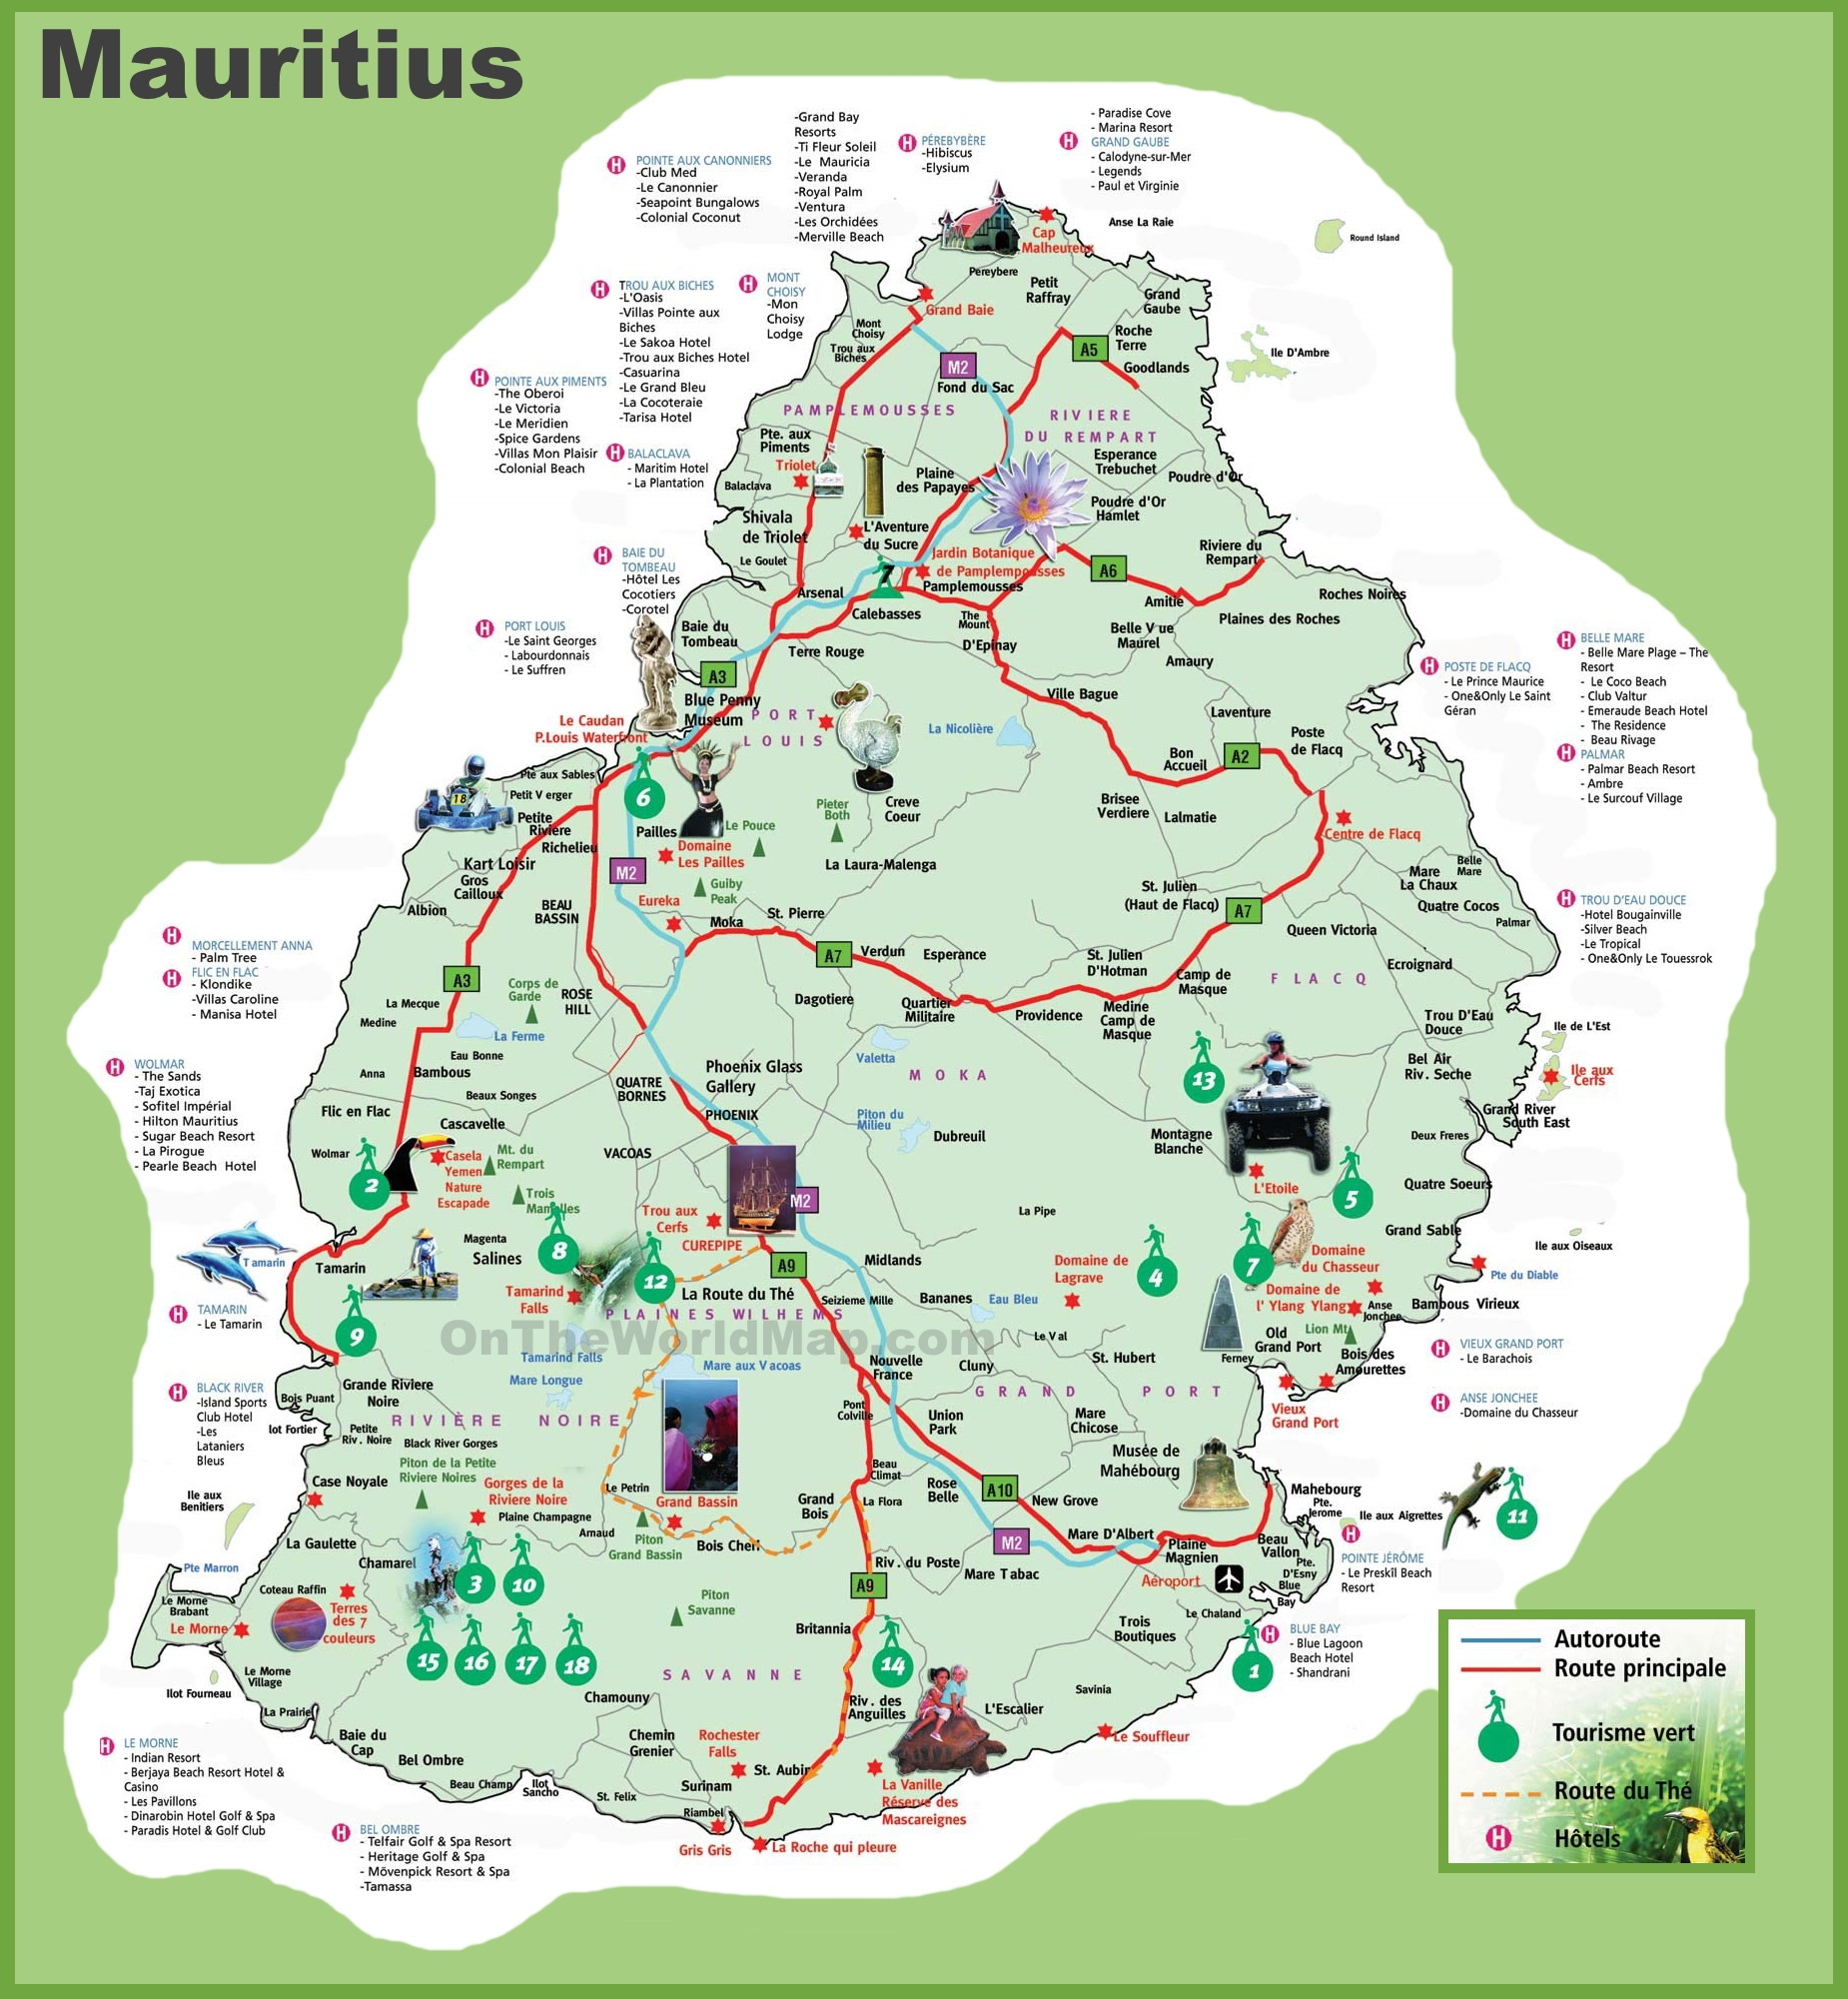 Mauritius Maps Maps Of Mauritius - Mauritius location in world map